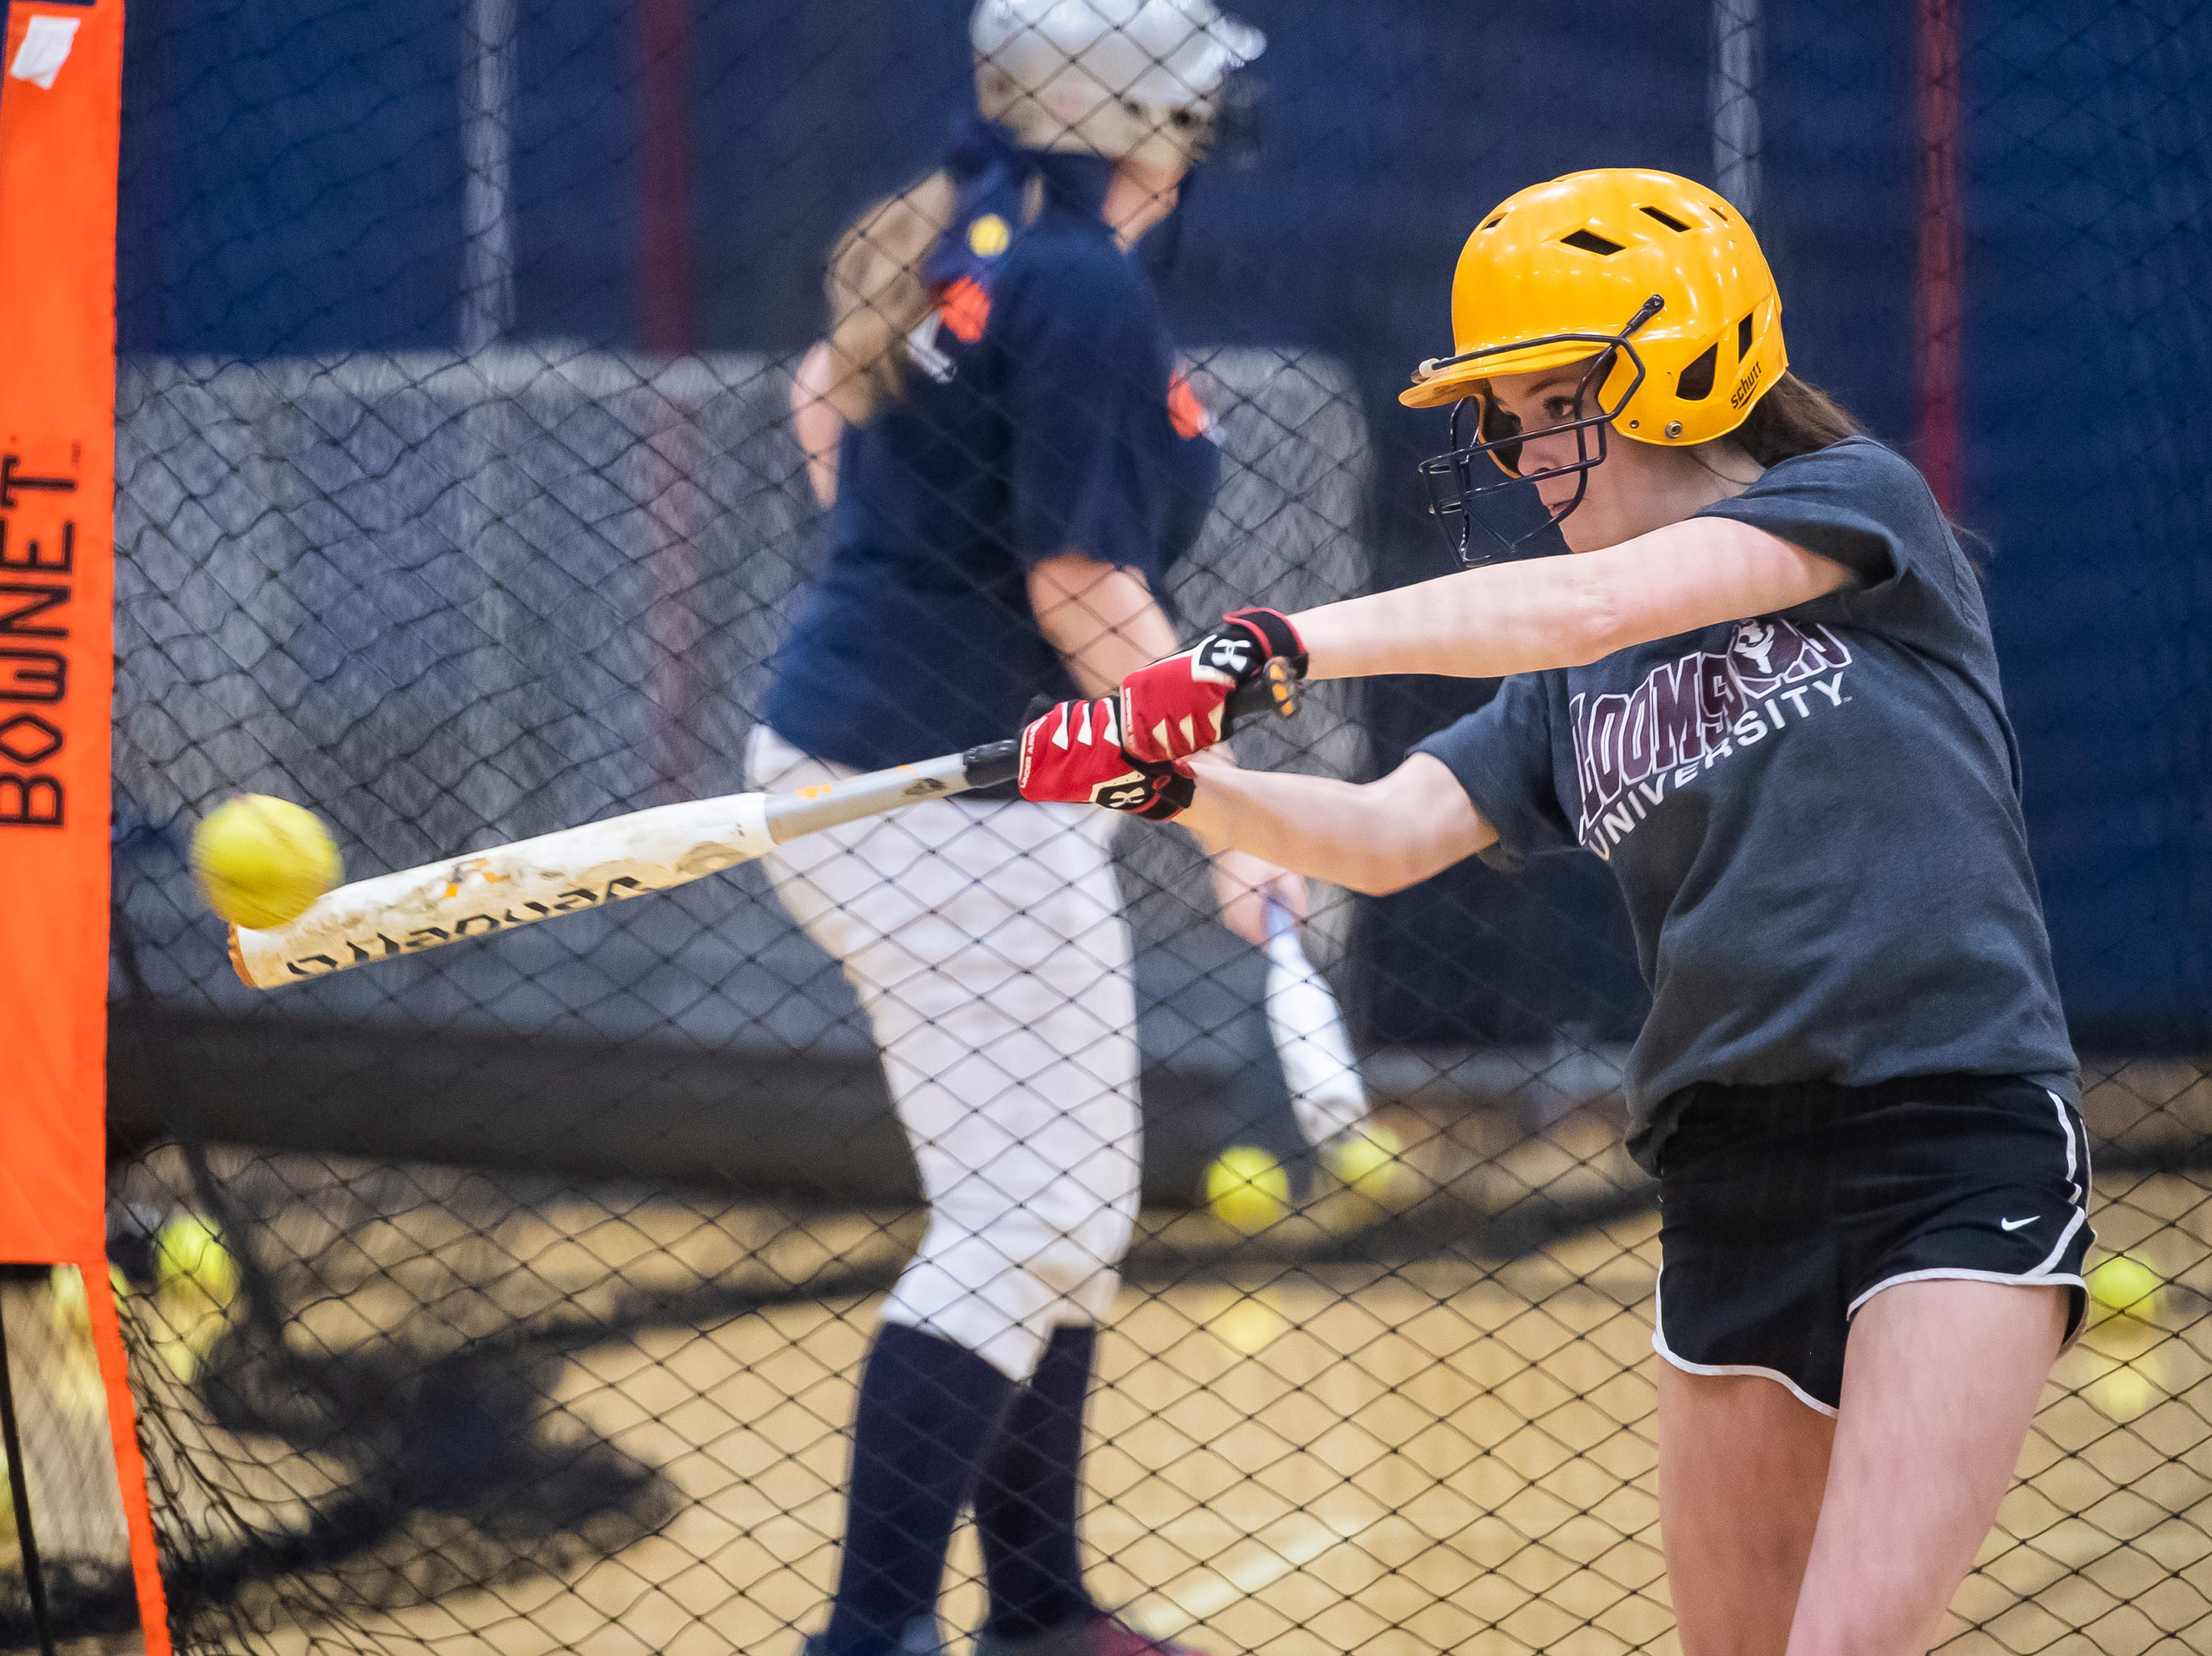 Littlestown's Jada Mummert connects with a pitch inside the batting cage on the first day of softball practice in the Littlestown High School gym Monday, March 4, 2019.